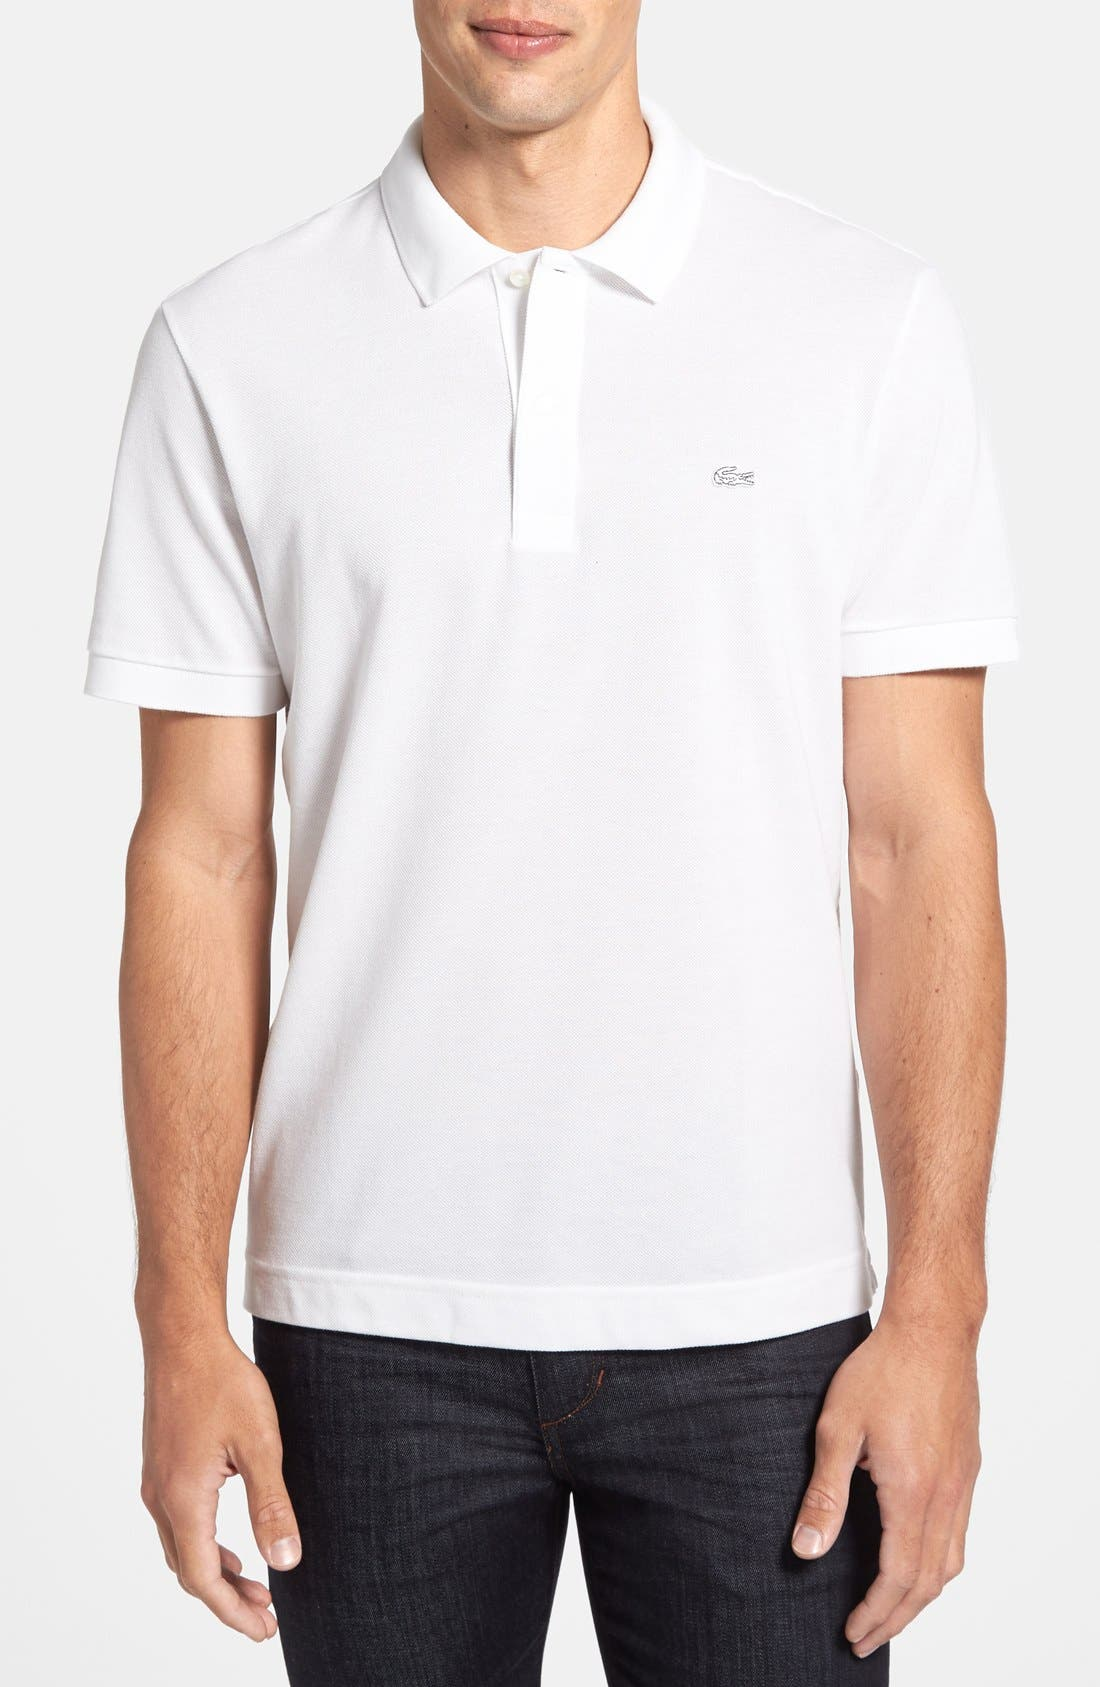 Alternate Image 1 Selected - Lacoste 'White Croc' Regular Fit Piqué Polo